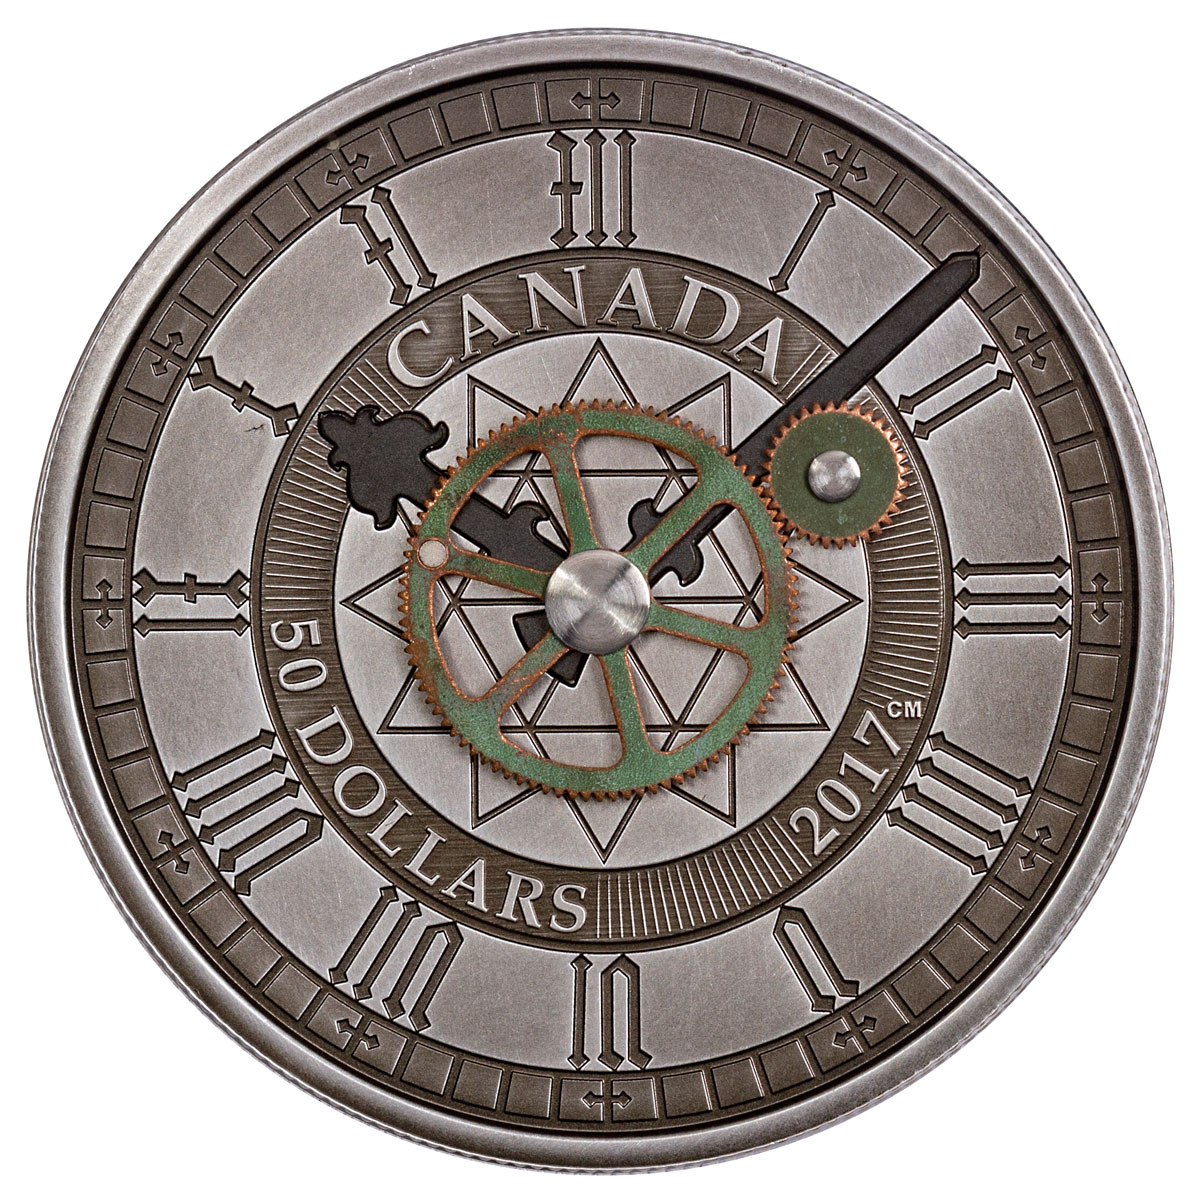 2017 Canada Peace Tower Clock 90th Anniversary - 5 oz Silver Antiqued $50 Coin GEM Proof OGP